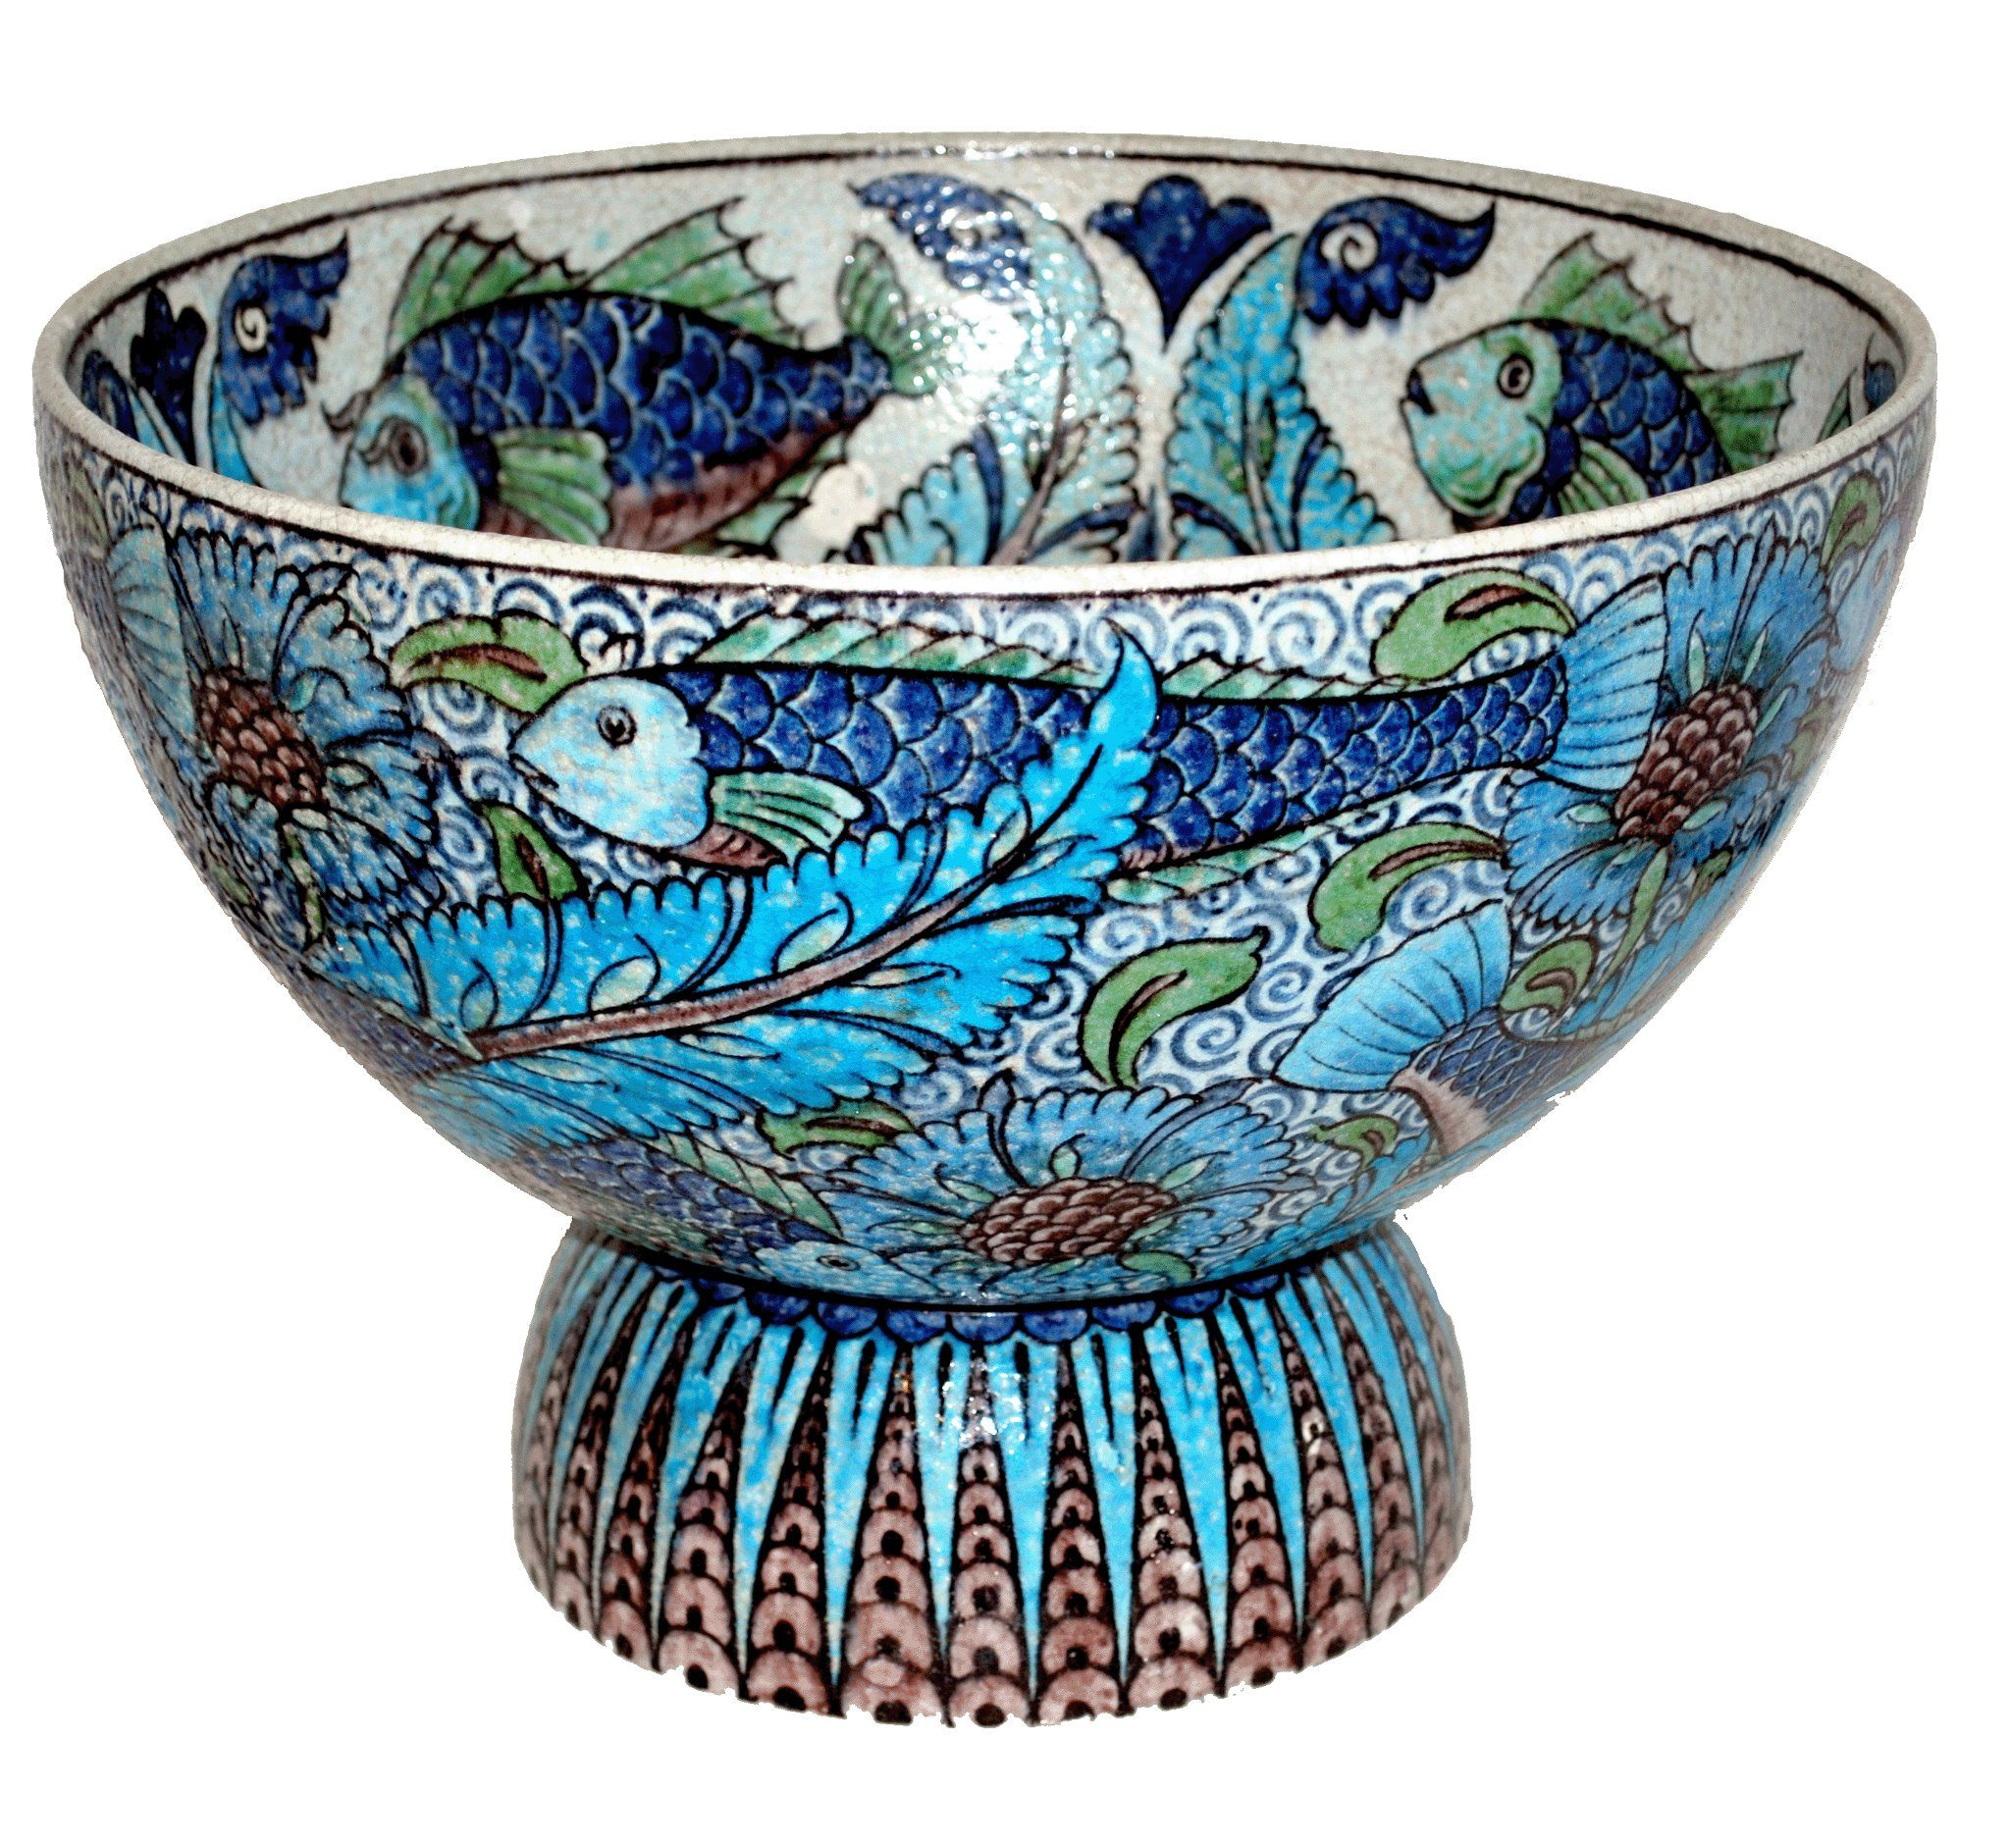 """Fish Punch Bowl designed by William De Morgan and decorated by Fred Passenger, 1890-1904. Inspired by the richly decorated ceramics from Isnik (Turkey) De Morgan's """"Persian"""" ware encompassed vibrant blue and green glazes and images. Galleons and fish designs are much prized by collectors today. ~via the De Morgan Centre, FB"""